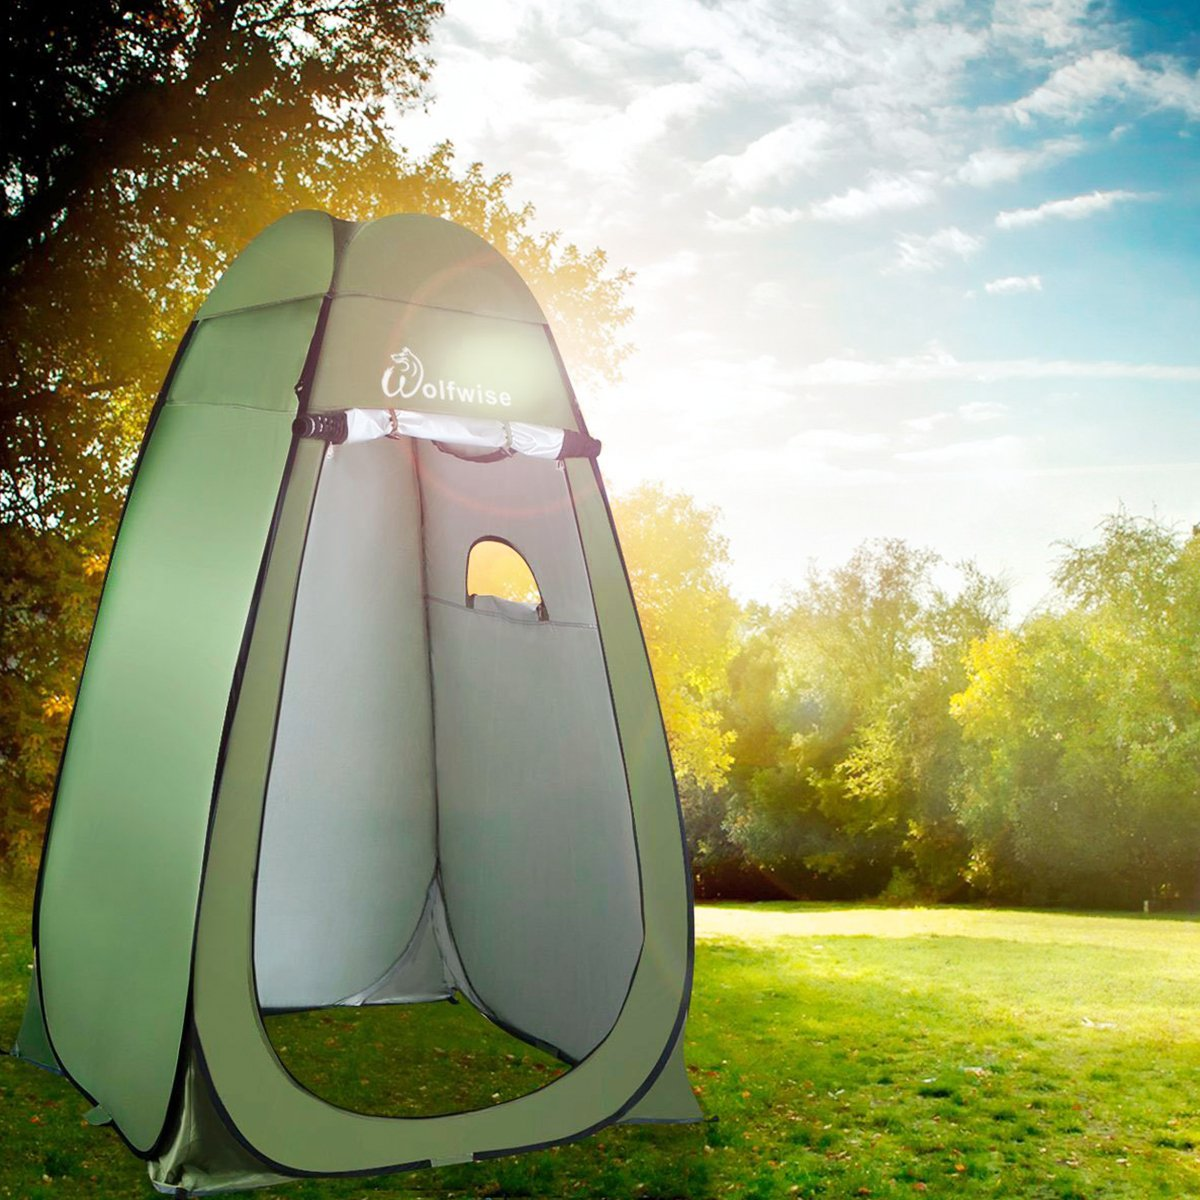 Shower Toilet Beach and Changing Room WolfWise Pop Up Privacy Shower Tent Portable Camping Biking